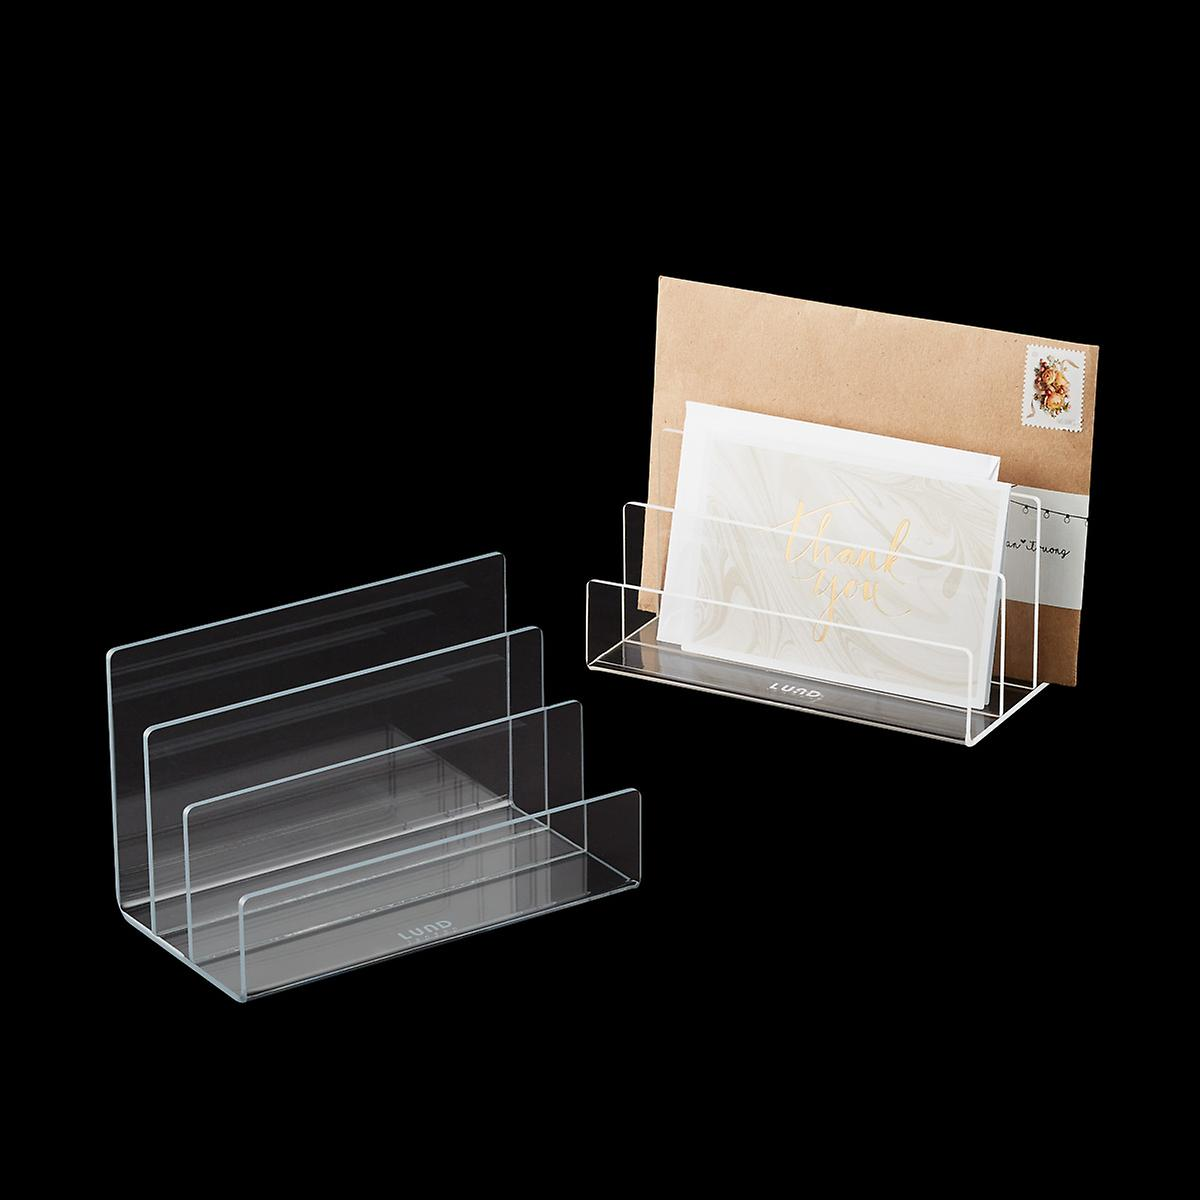 White Trim Mod Acrylic Mail Holder